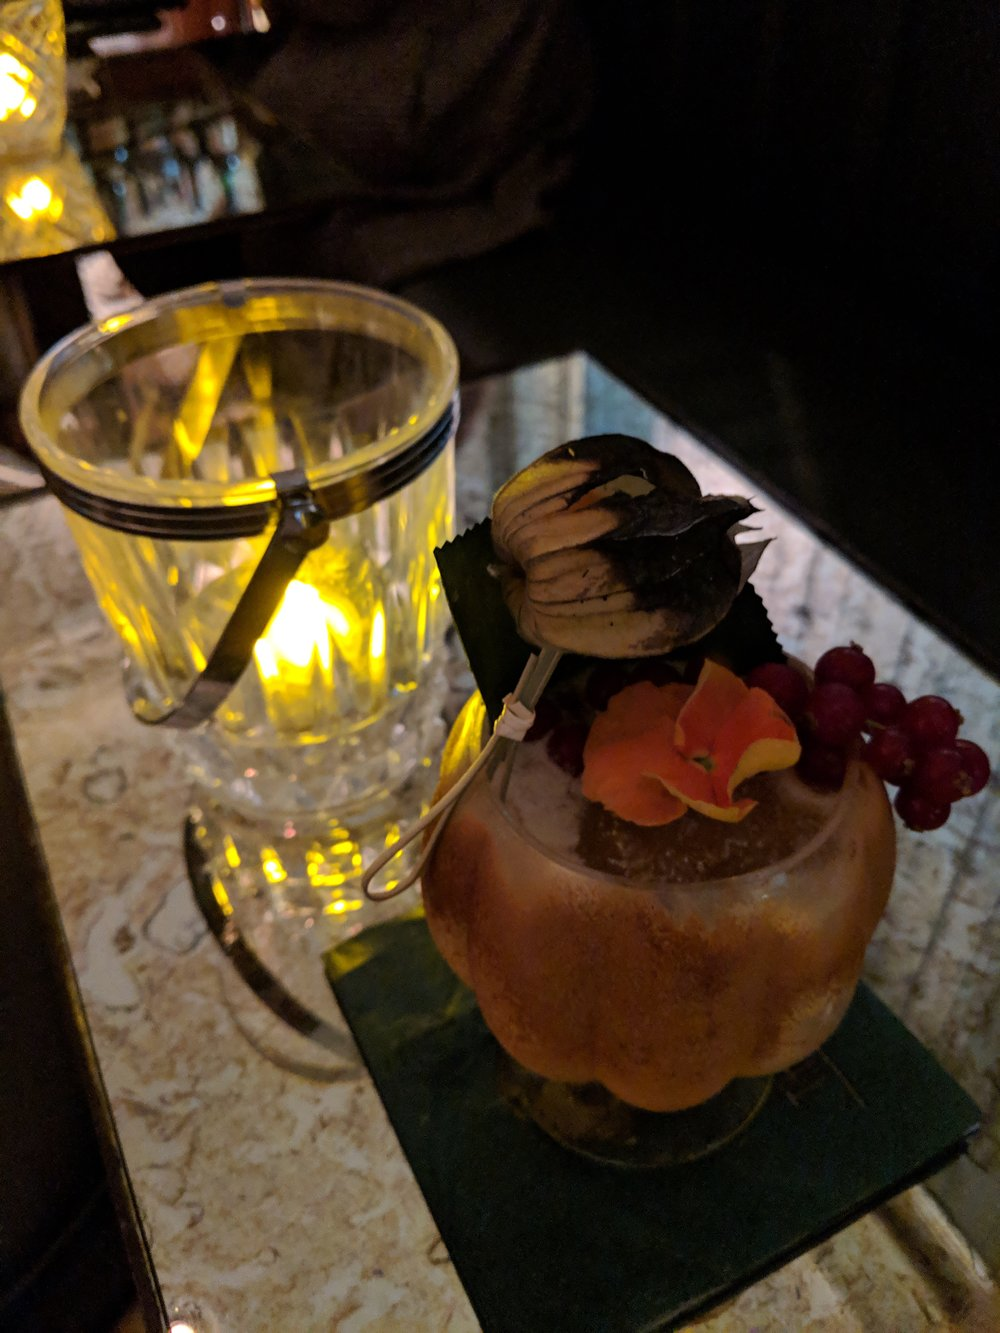 Cocktail of the month - King of Calypso: Cashcane extra old rum, pineapple rock candy syrup, bois bande bark, goat cheese & coconut leche, baked almond liquer, lime